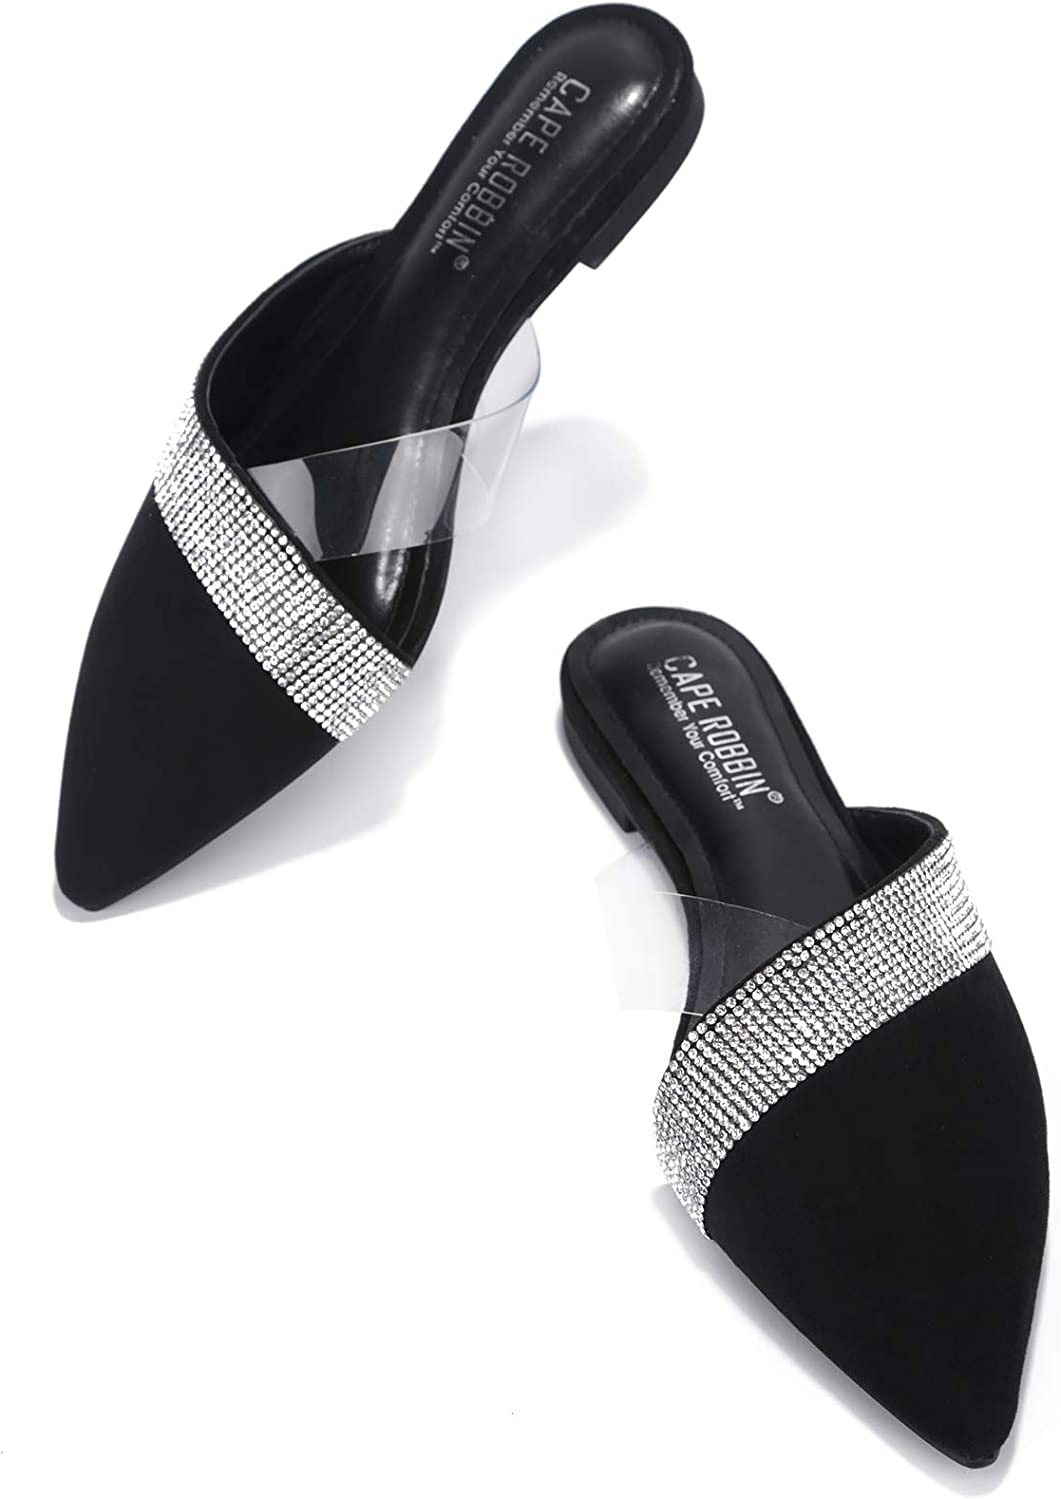 Cape Robbin Cici Flat Sandals Slides for Women, Womens Mules Slip On Shoes